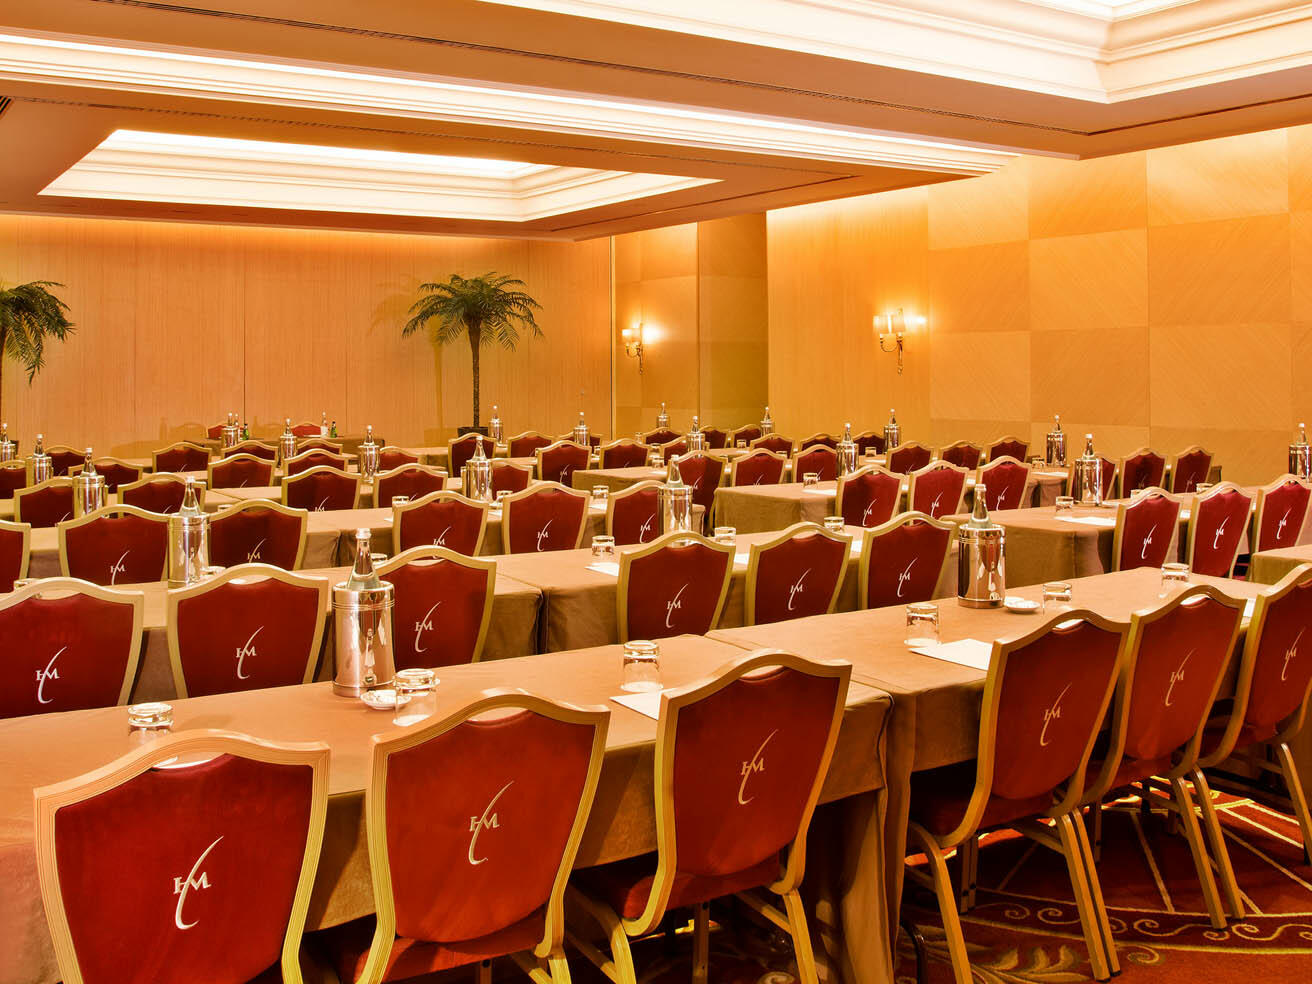 Meeting Room with long tables in rows at Hotel Cascais Miragem